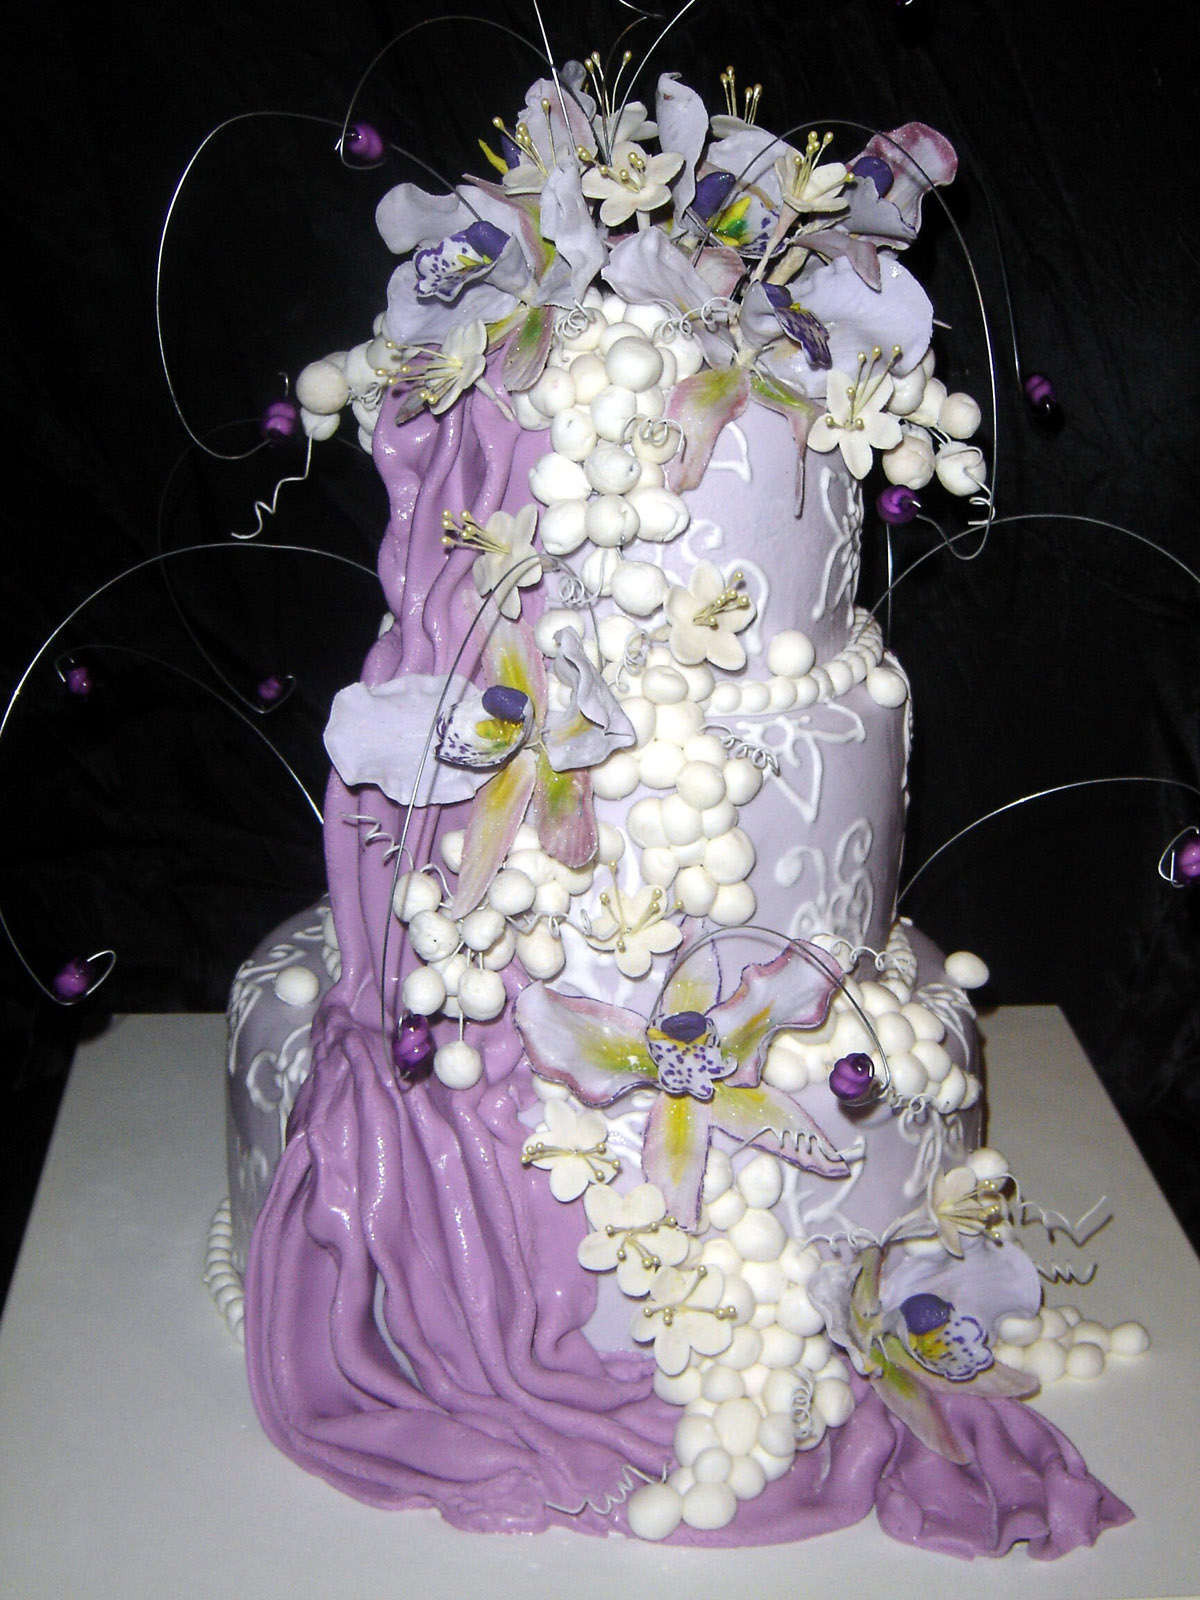 Different Wedding Cakes  Unique Wedding Cakes Be Different on Your Special Day